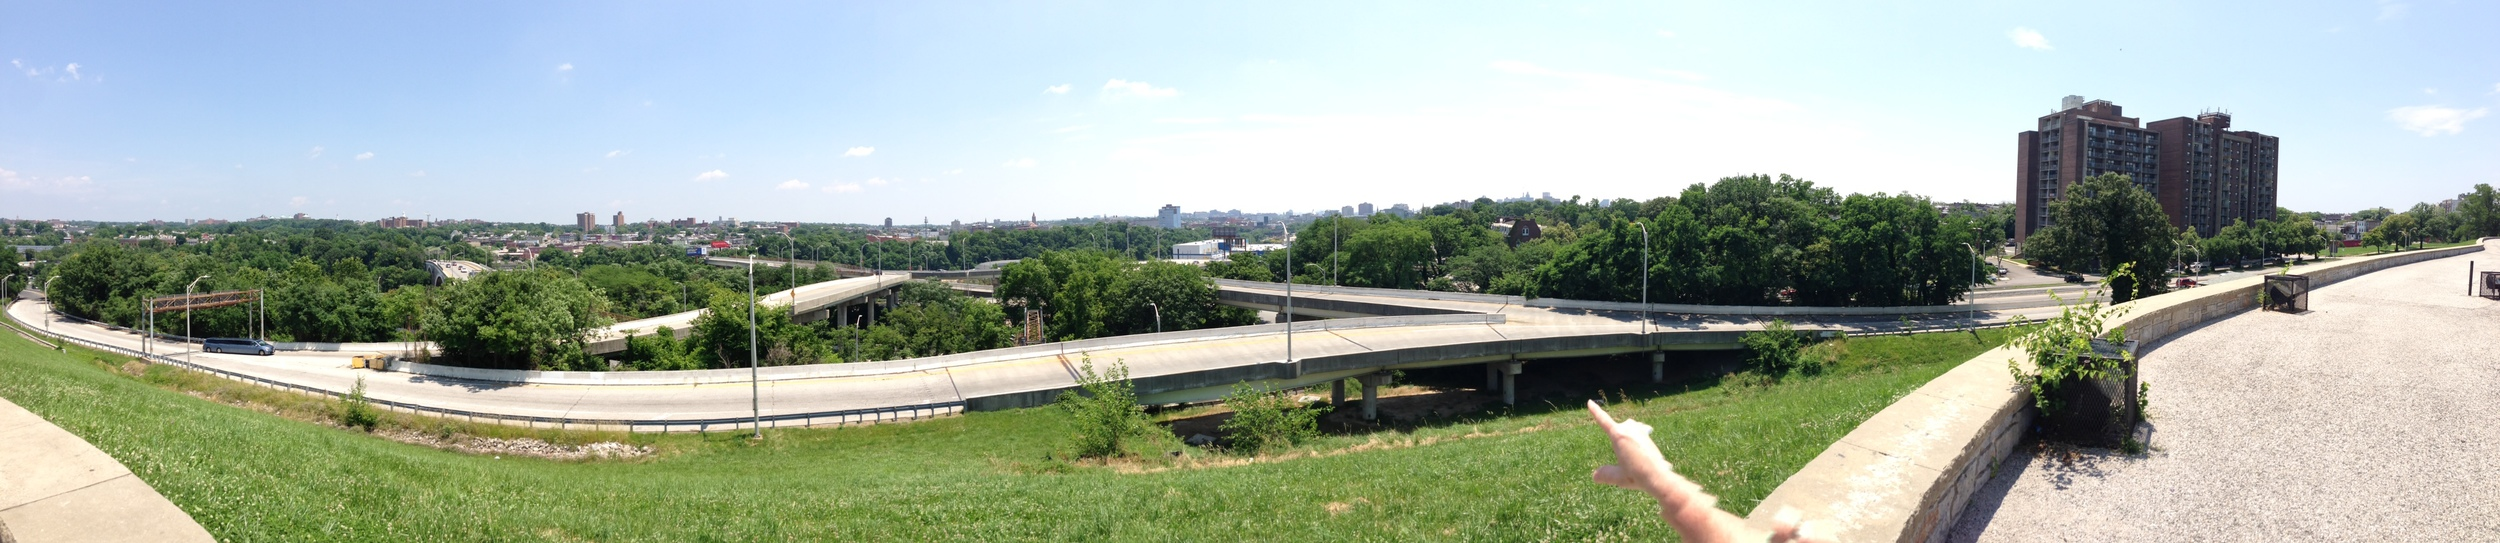 The view from Druid Park in Baltimore, MD